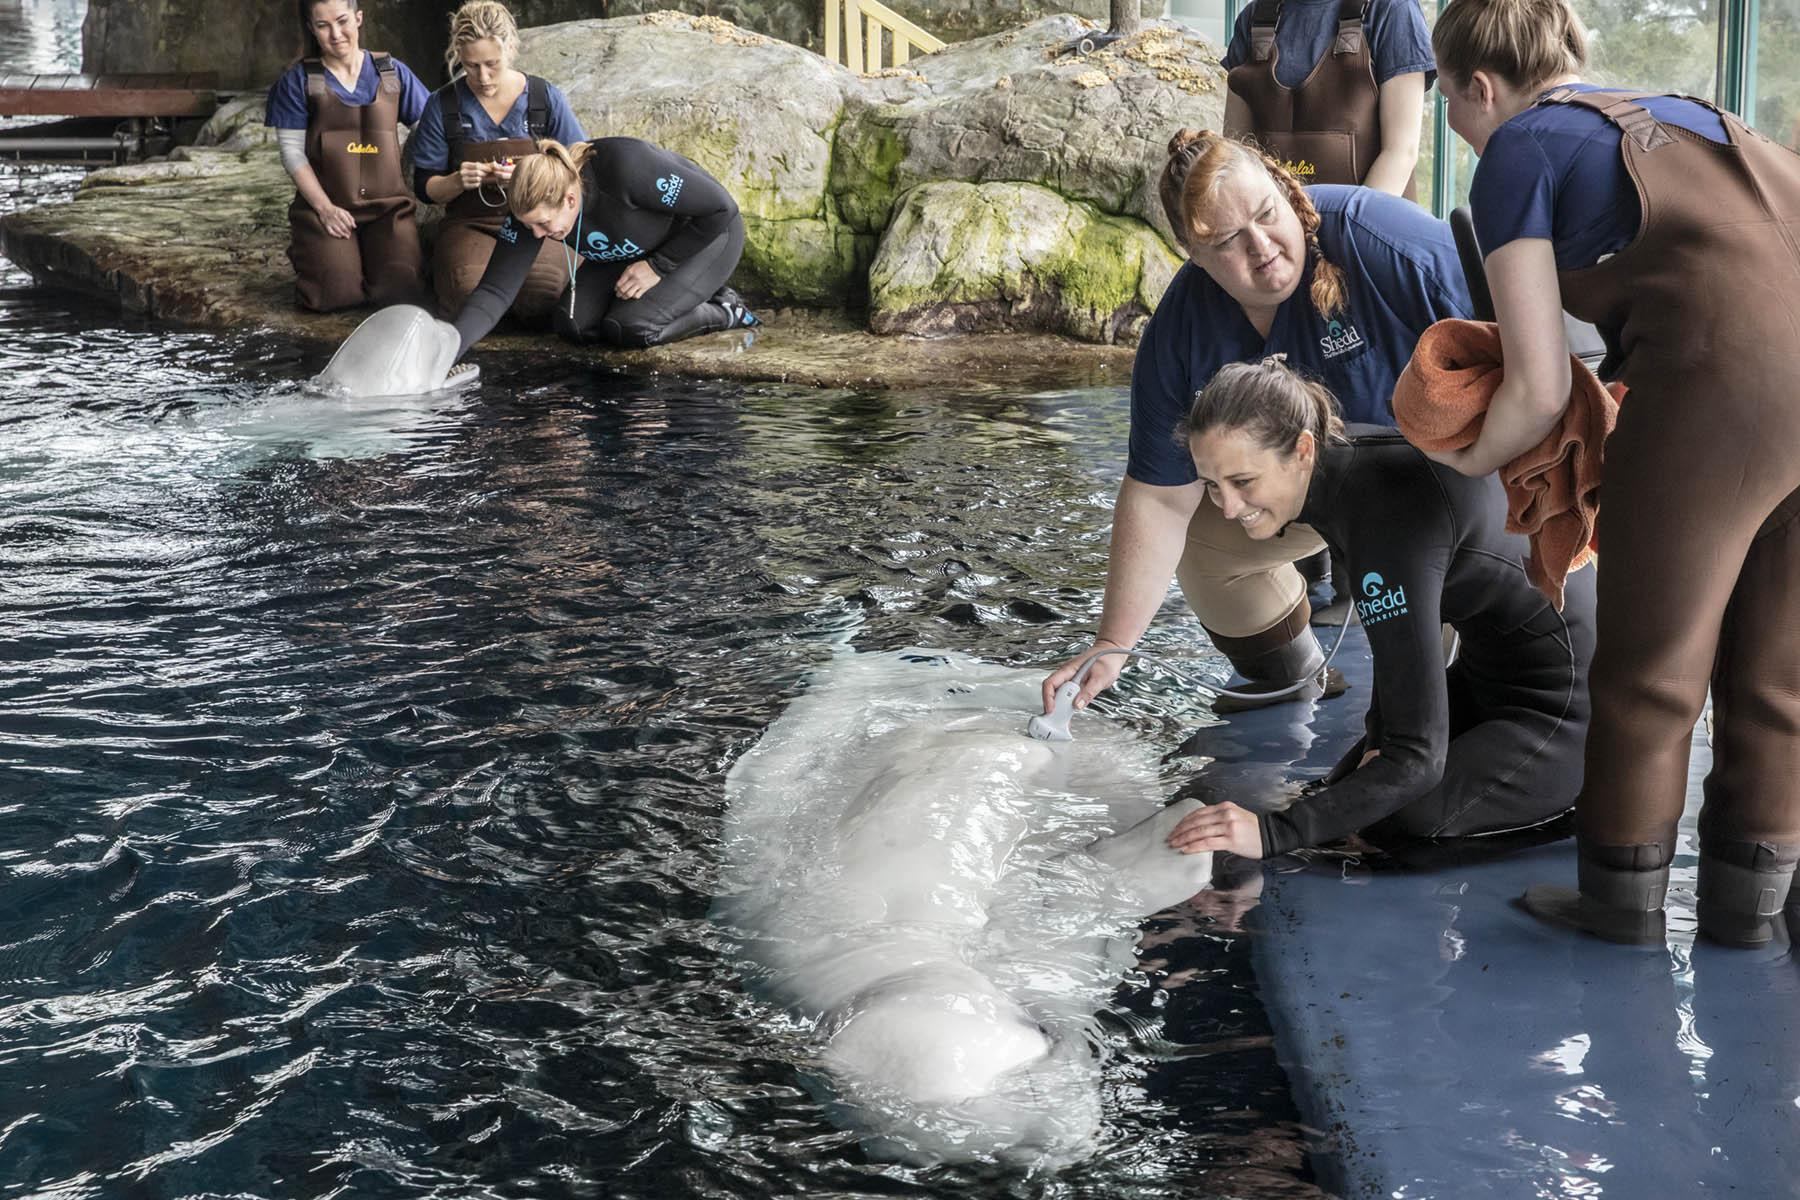 Earlier this year, Shedd Aquarium's veterinary team performed a routine ultrasound on Mauyak, a 38-year-old beluga whale, to check in on her developing calf. (Brenna Hernandez / Shedd Aquarium)